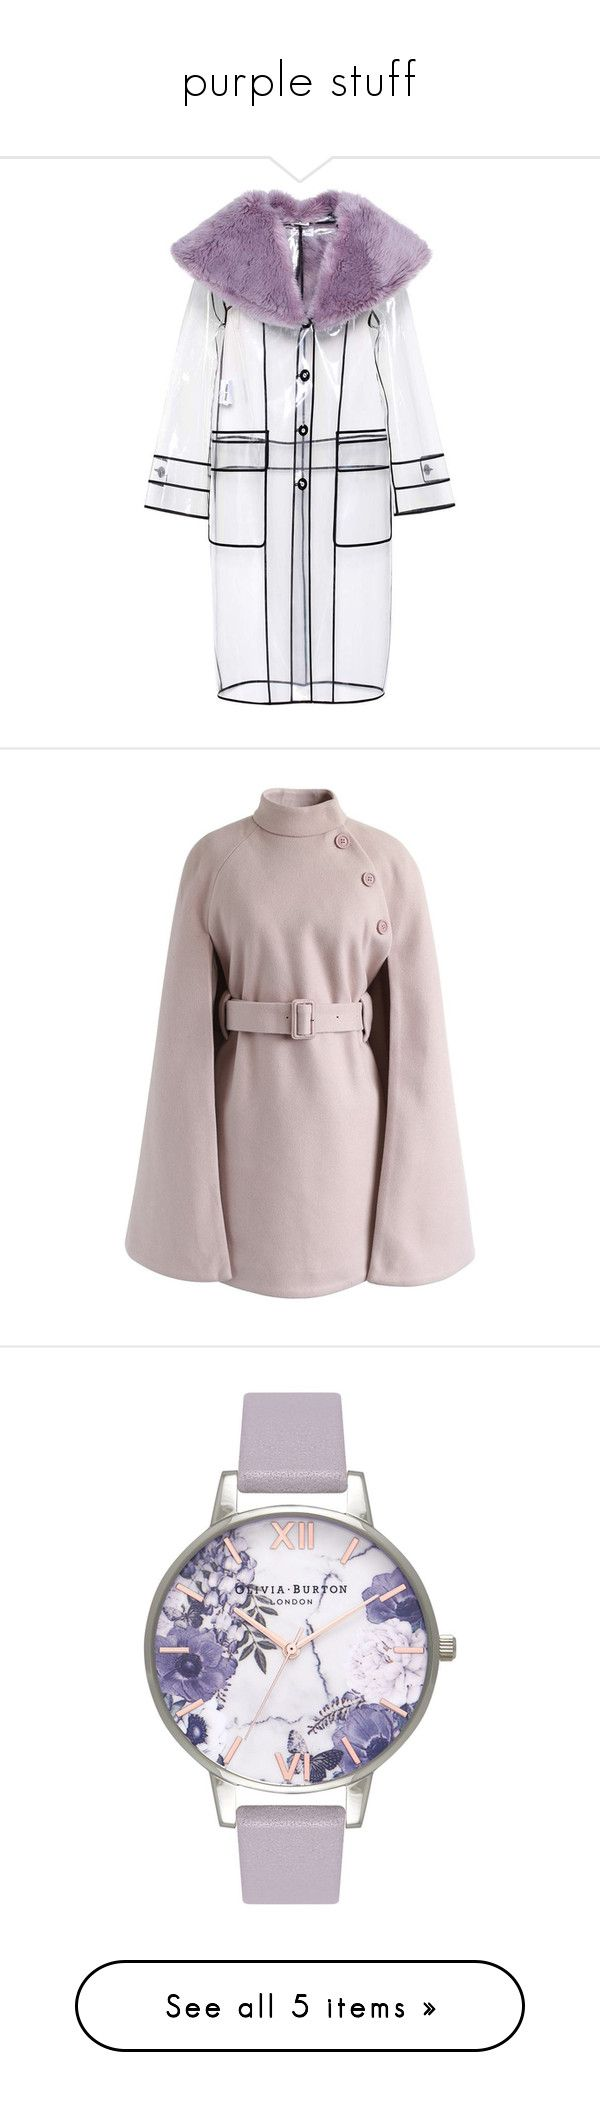 """""""purple stuff"""" by ailatanami ❤ liked on Polyvore featuring outerwear, coats, jackets, miu miu, purple, purple coat, mac coat, purple rain coat, clear rain coats and pink"""